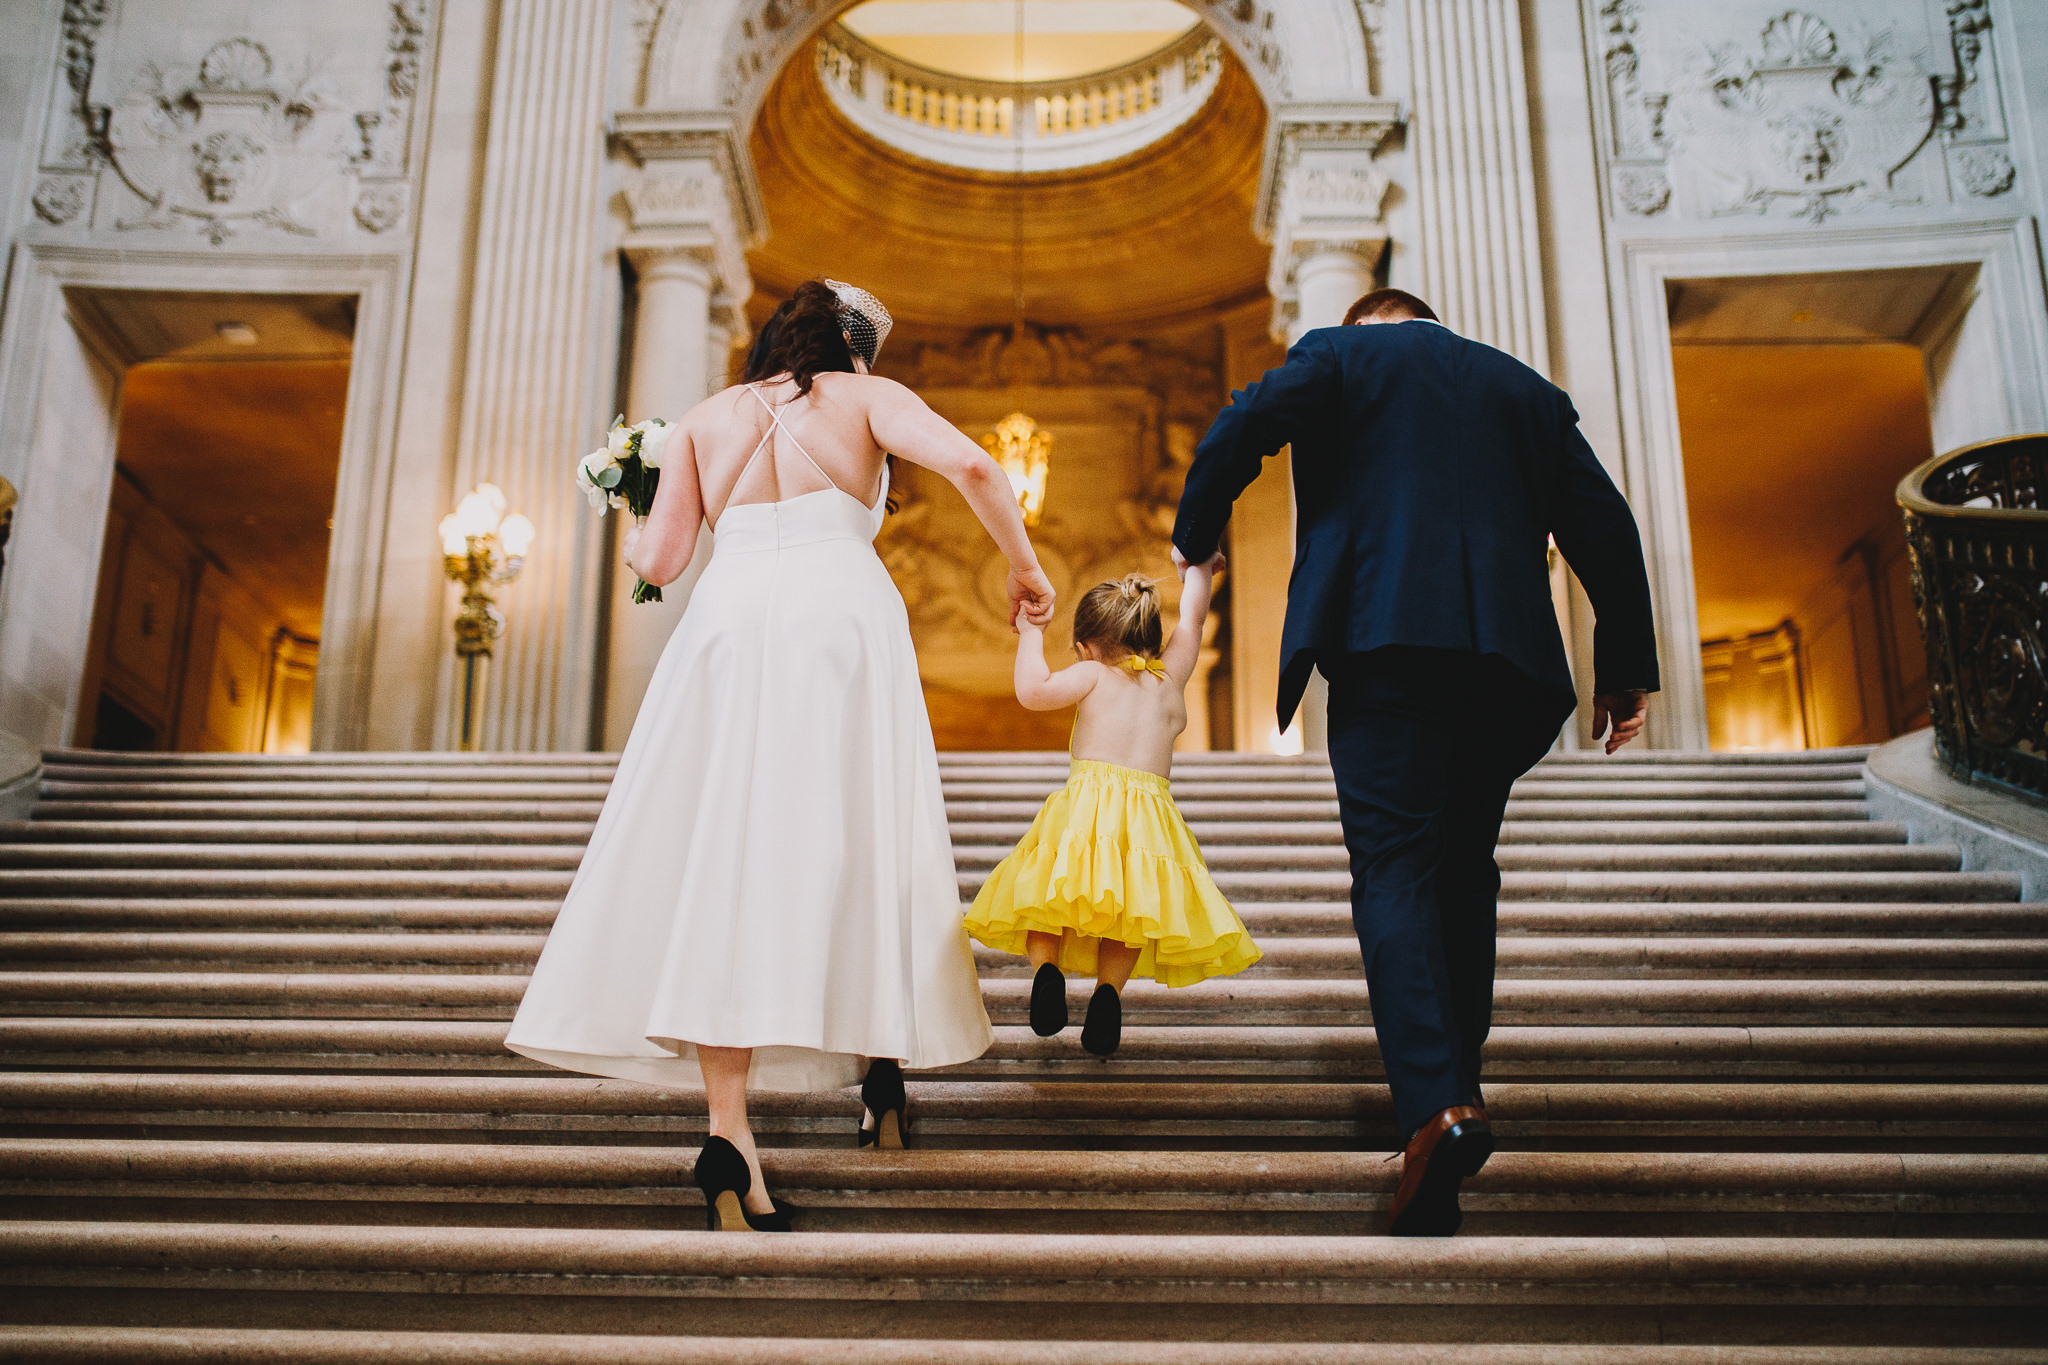 Archer Inspired Photography SF City Hall Elopement Wedding Lifestyle Documentary Affordable Photographer-64.jpg